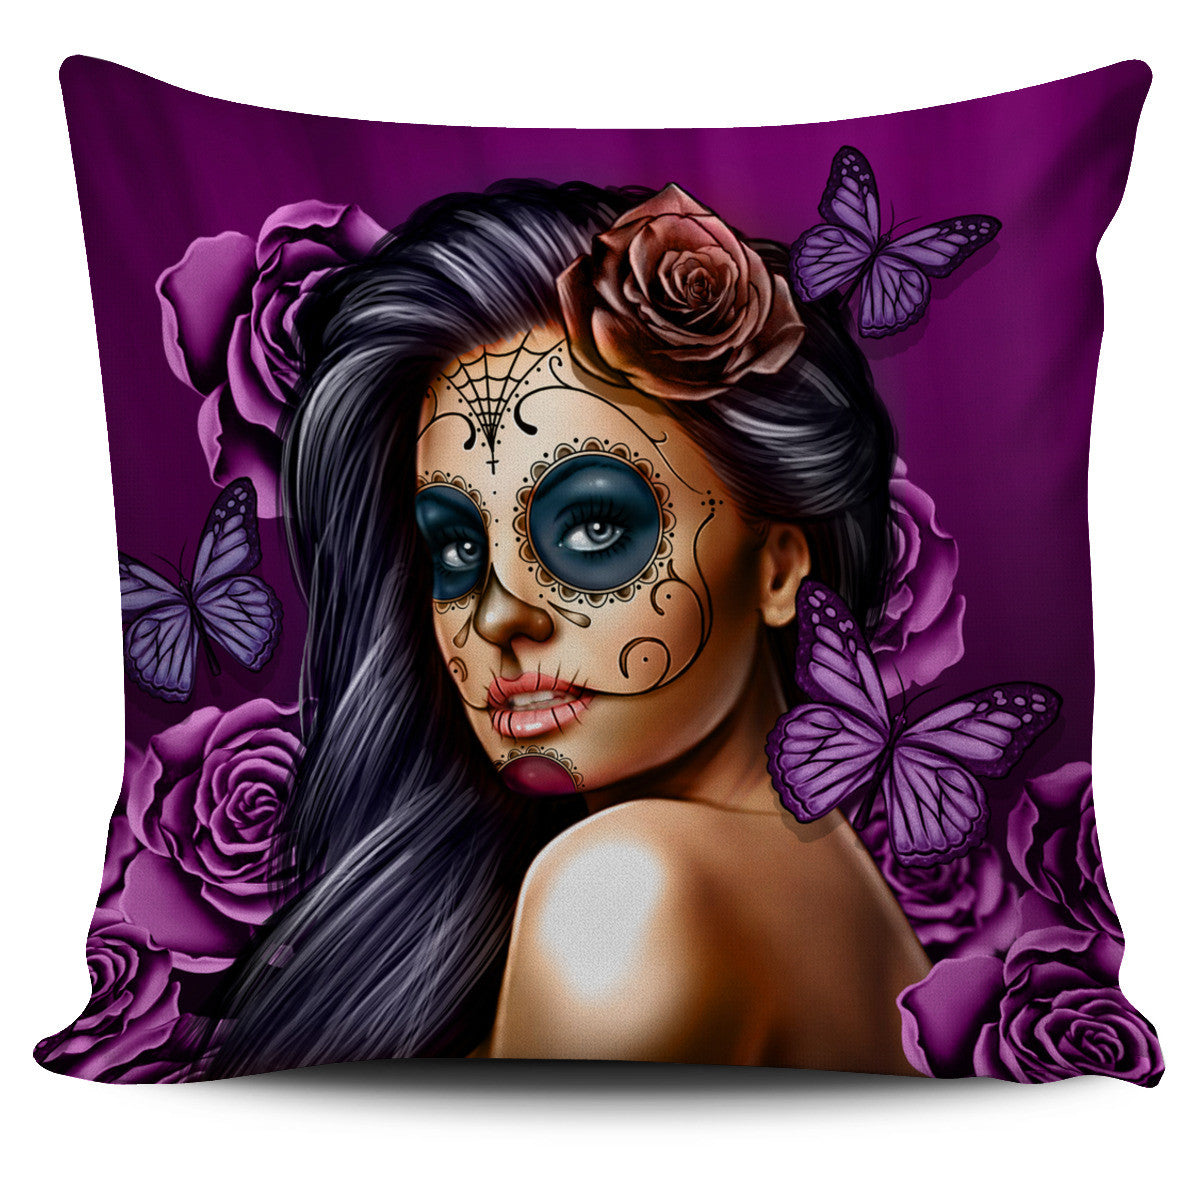 Tattoo Calavera Girl Pillow Cover Set